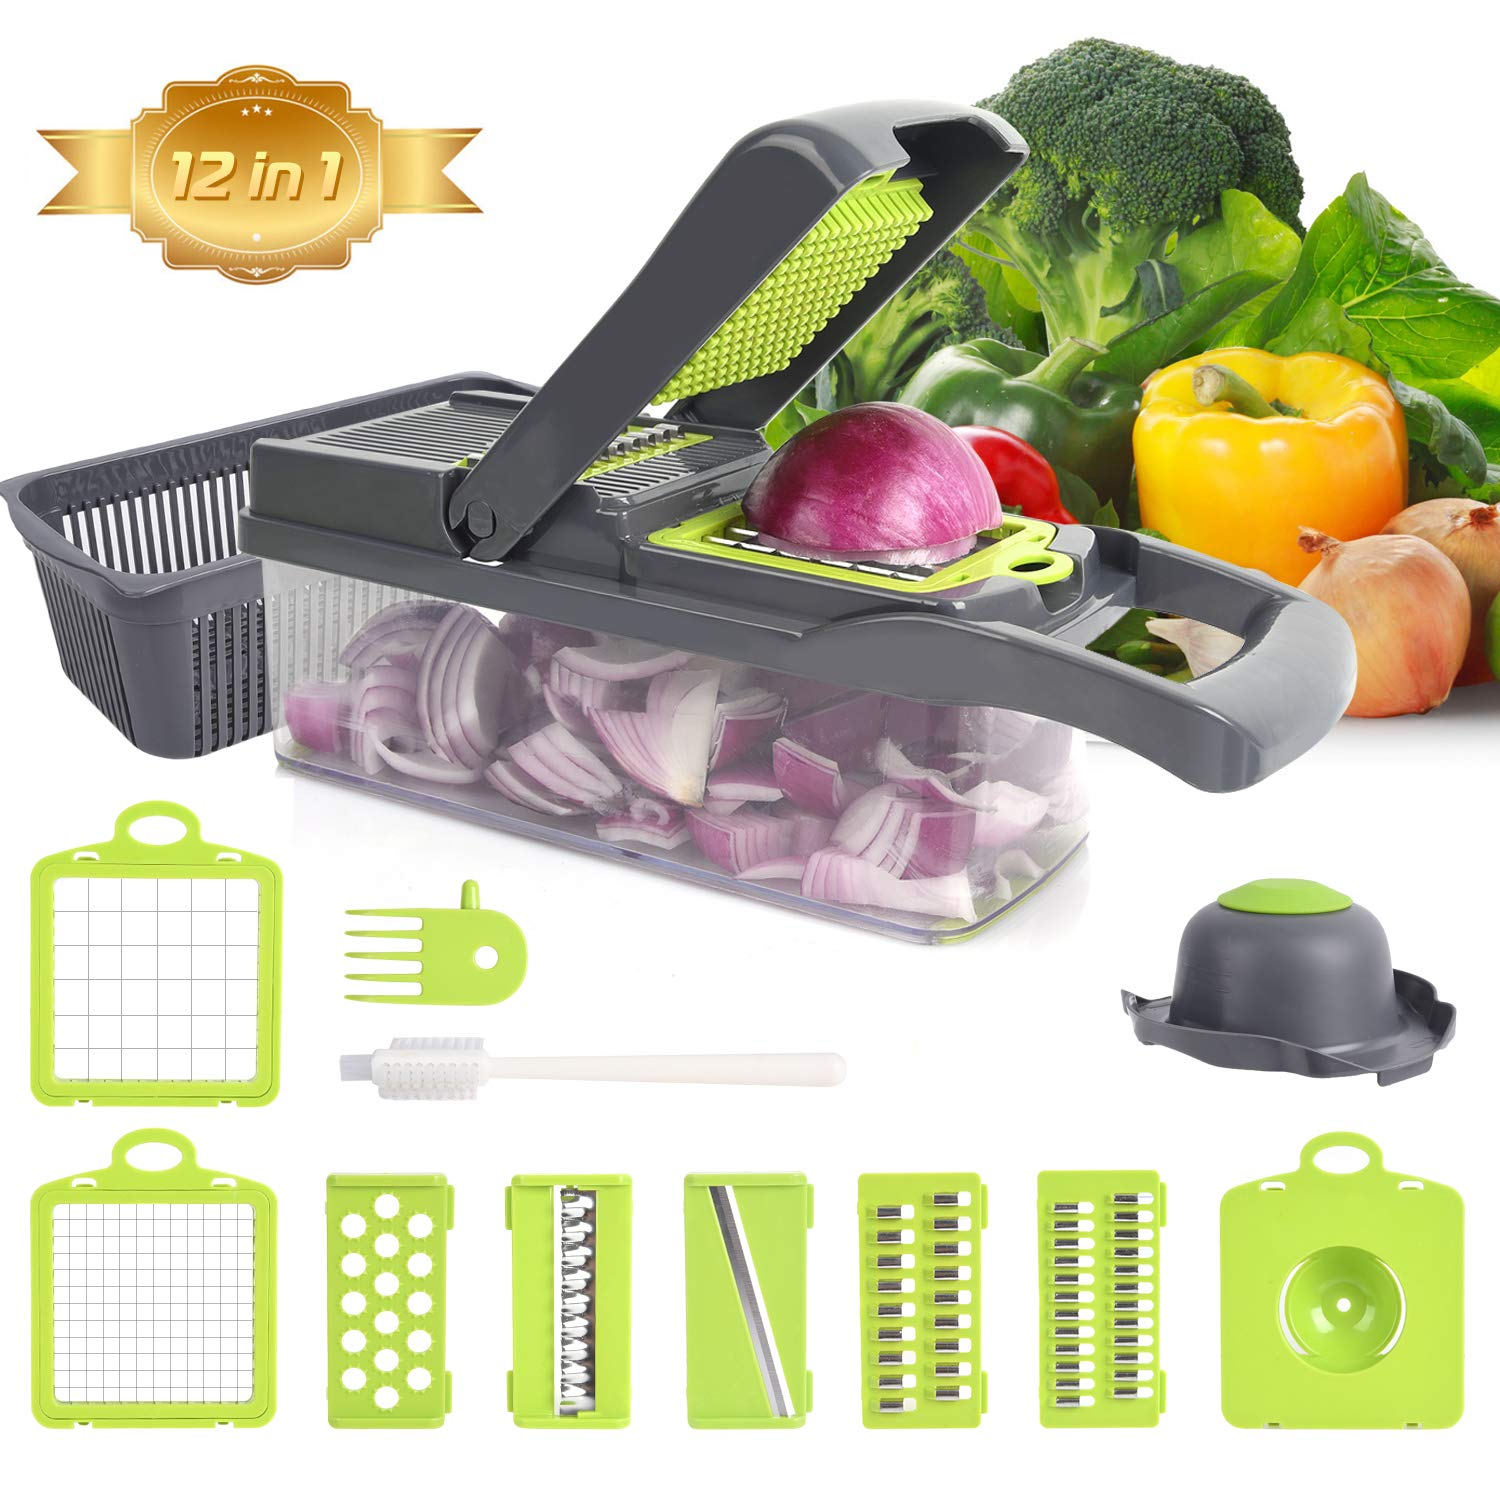 Mandolines Vegetable Choppers Slicer – XREXS 12 in 1 Multifunction Veggie Slicer